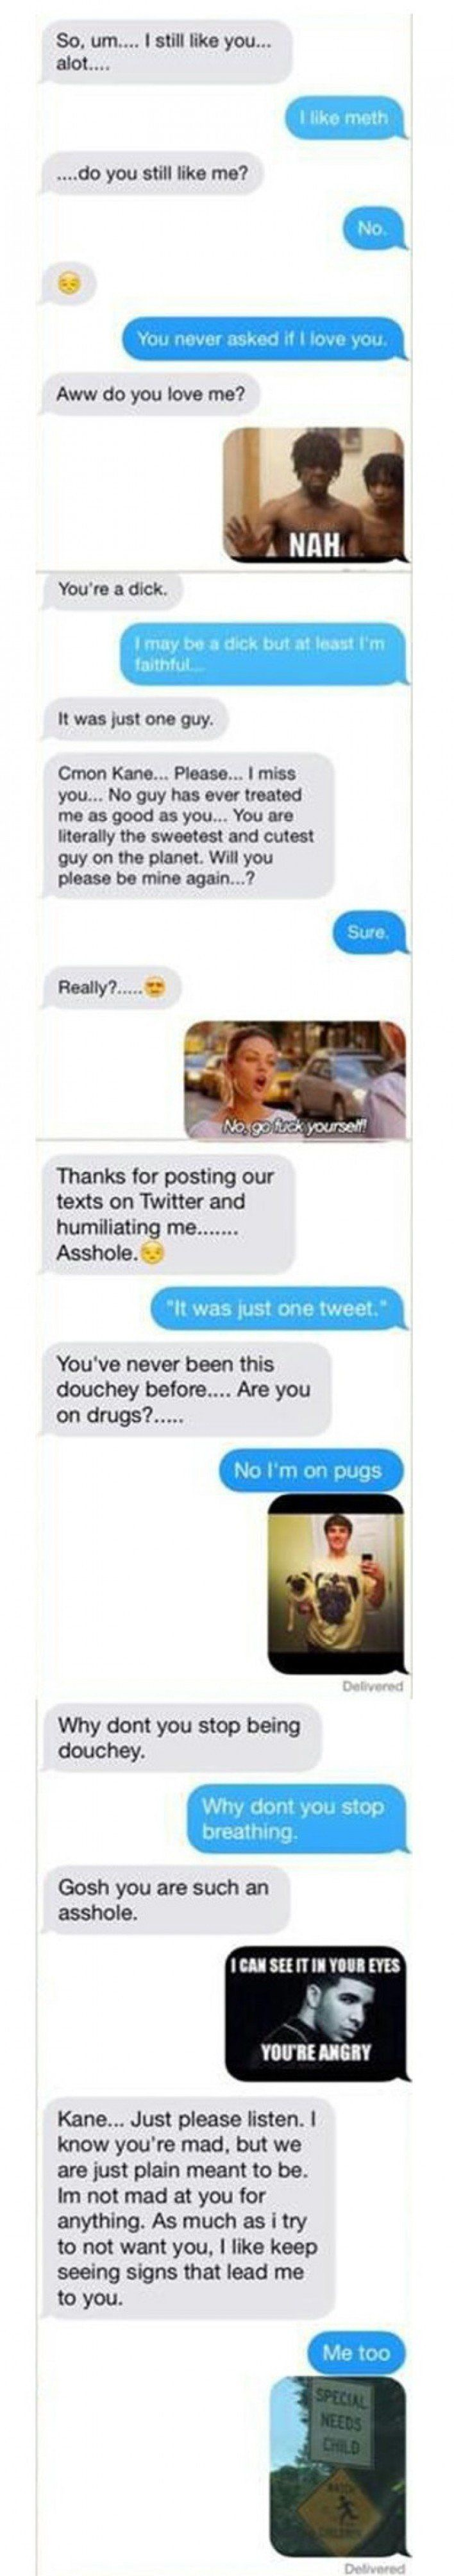 This Guy Handles Texting His Cheating Ex-Girlfriend Like A Boss